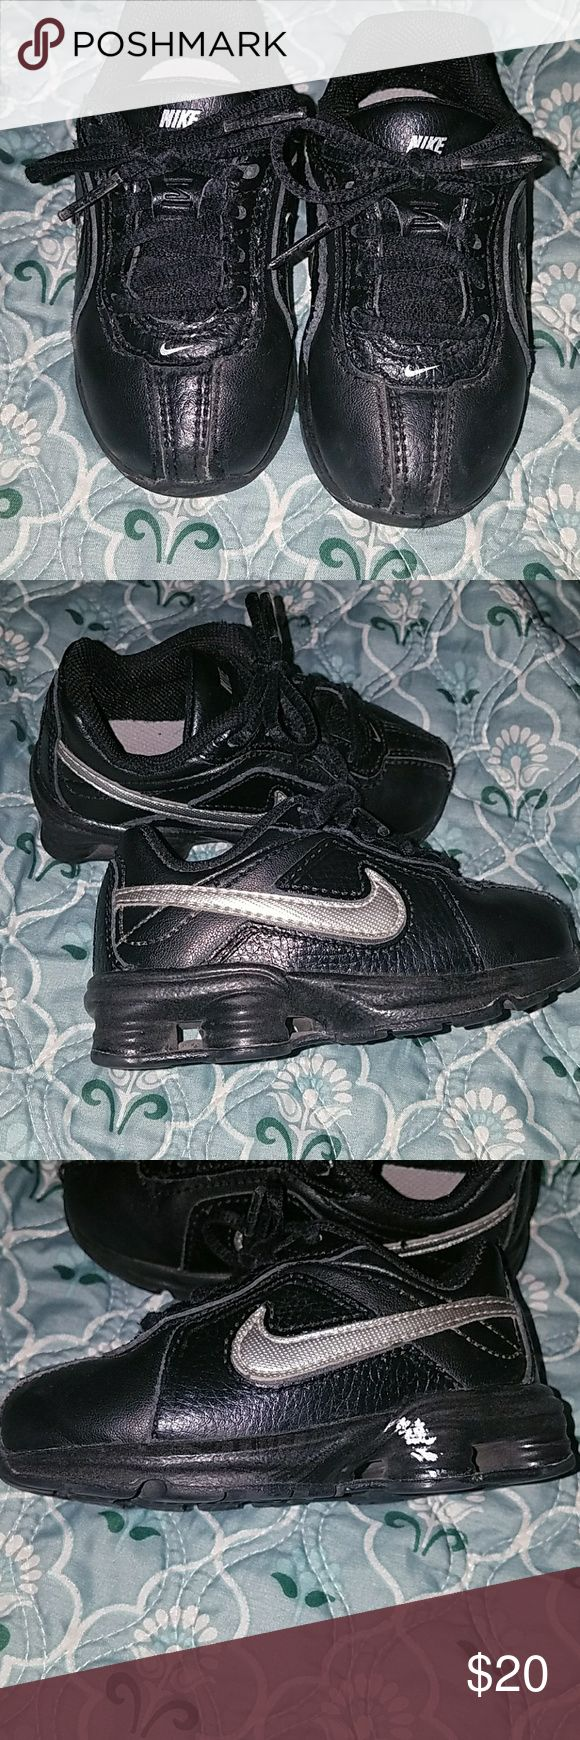 Boys Nike shox Black nike shox size 6c in good condition left shoe has small amount if white paint on heal Nike Shoes Sneakers